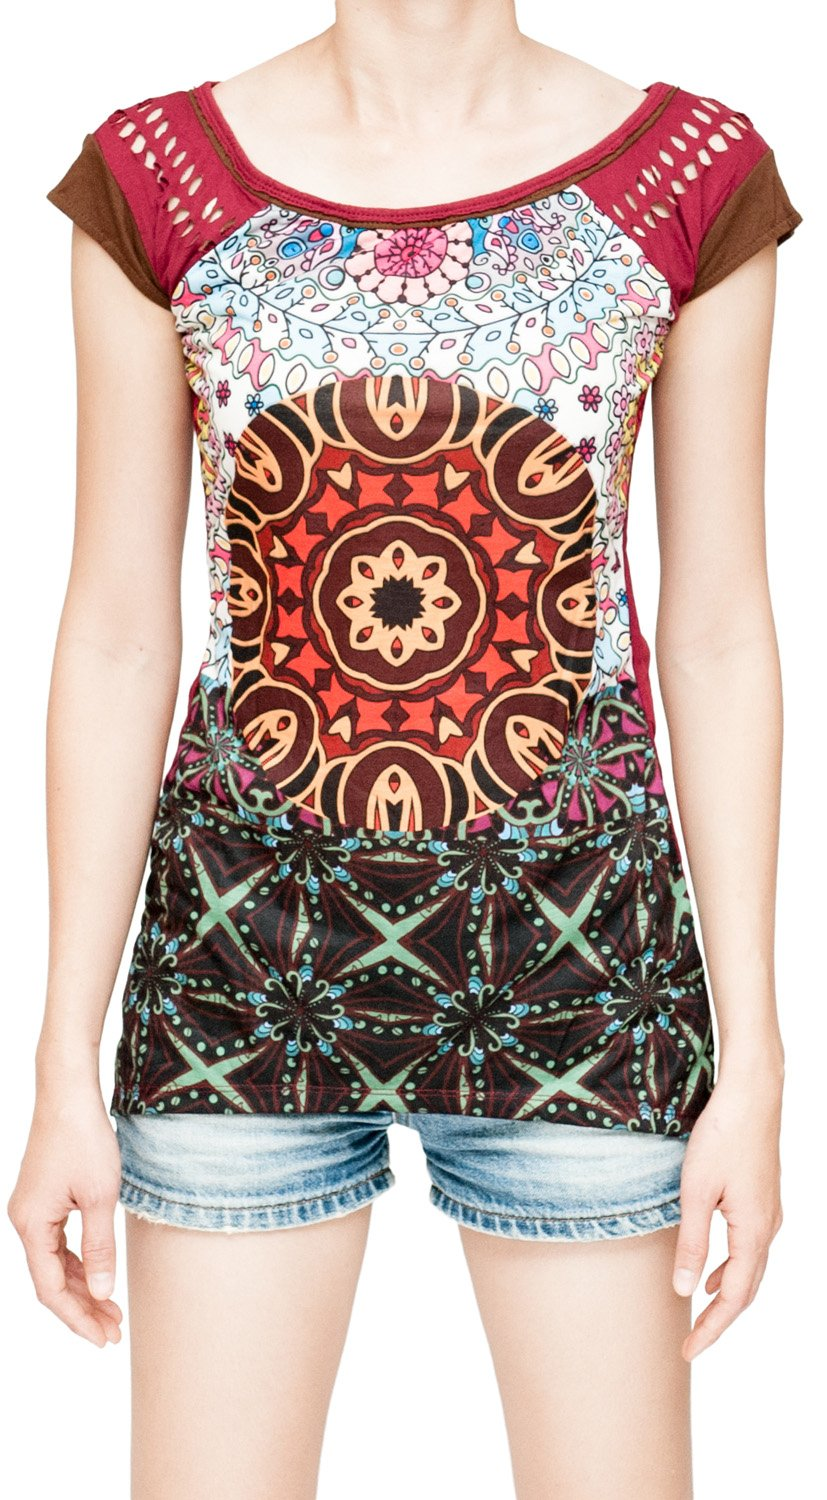 Underground Mandala Dreamcatcher Full Print Hippie Gypsy Women's T-Shirt (Large, US 12-14)